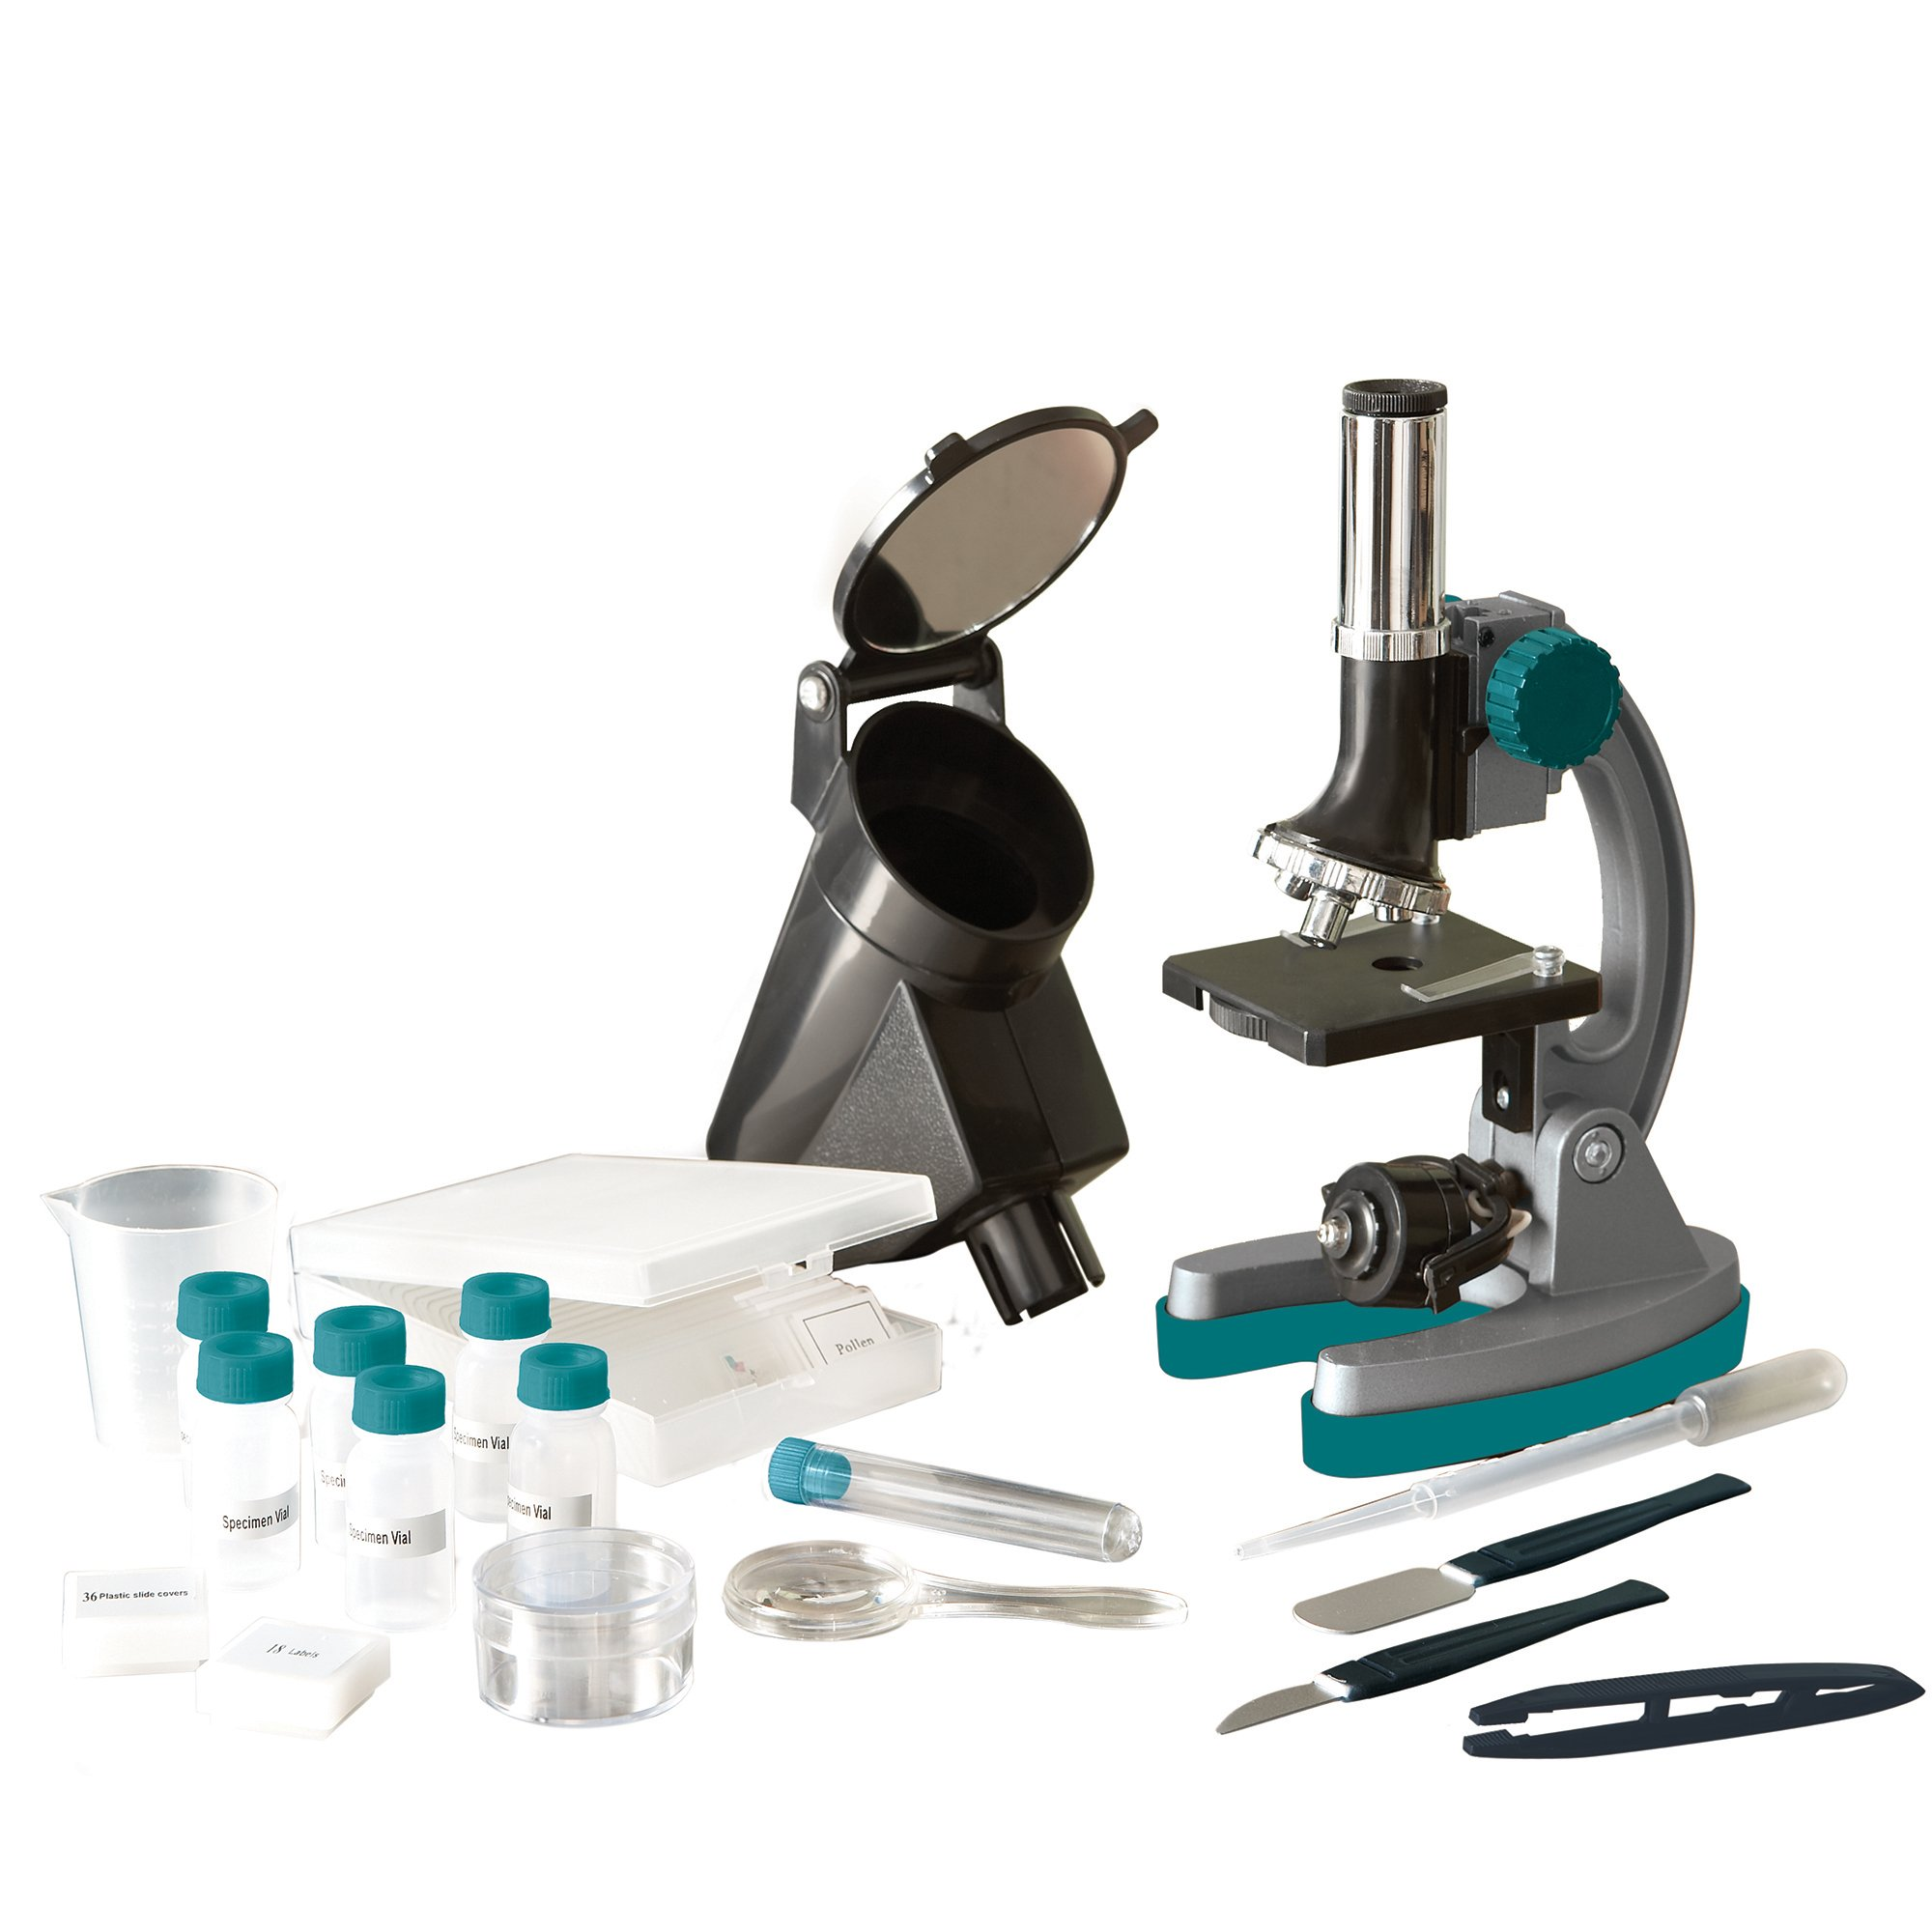 Educational Insights GeoSafari Micropro Elite 98-Piece Microscope Set